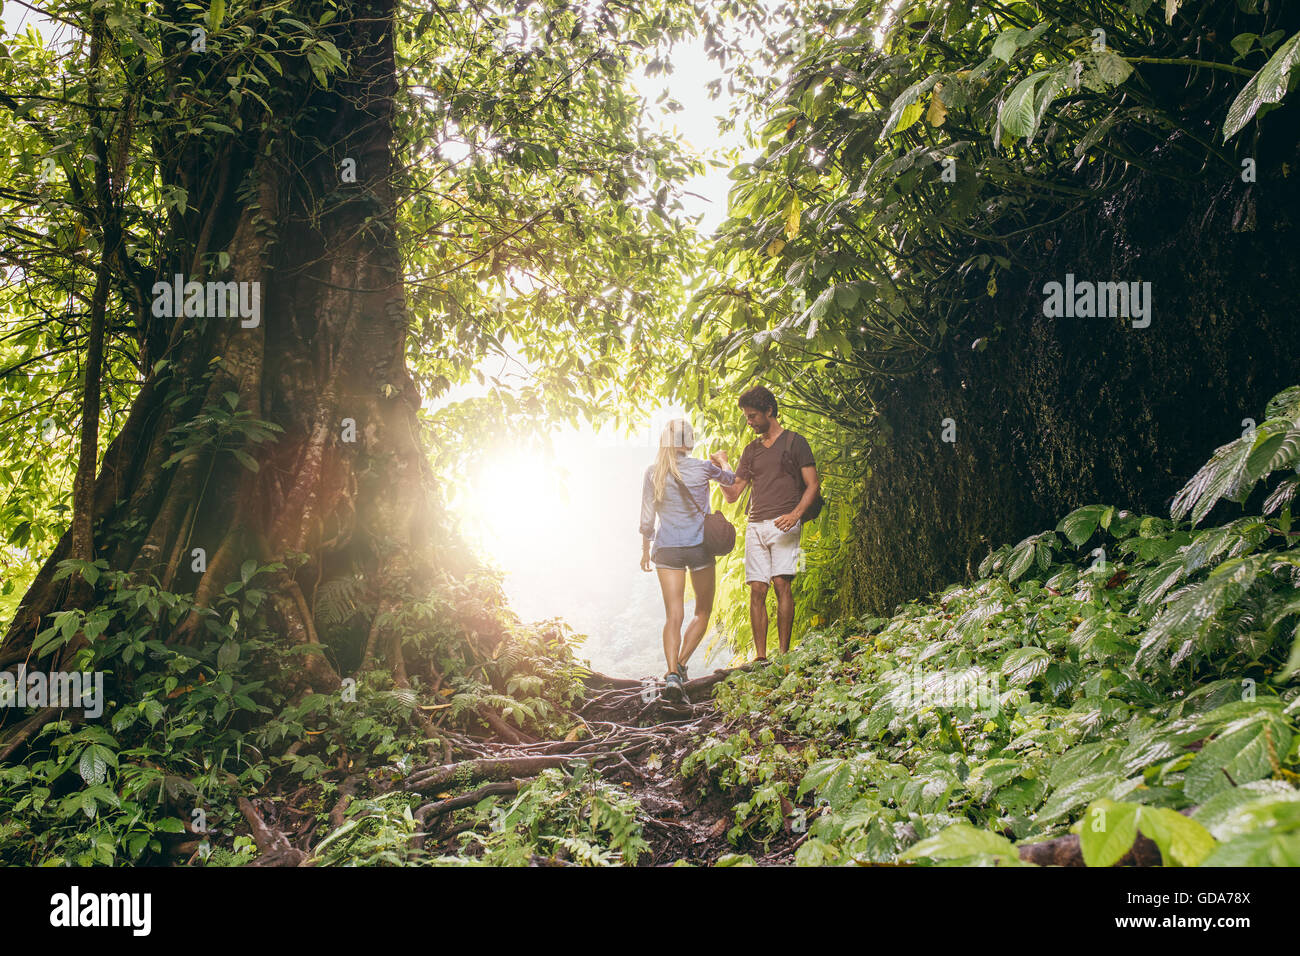 Young man and woman hiking in tropical jungle. Couple of hikers walking along forest trail. - Stock Image